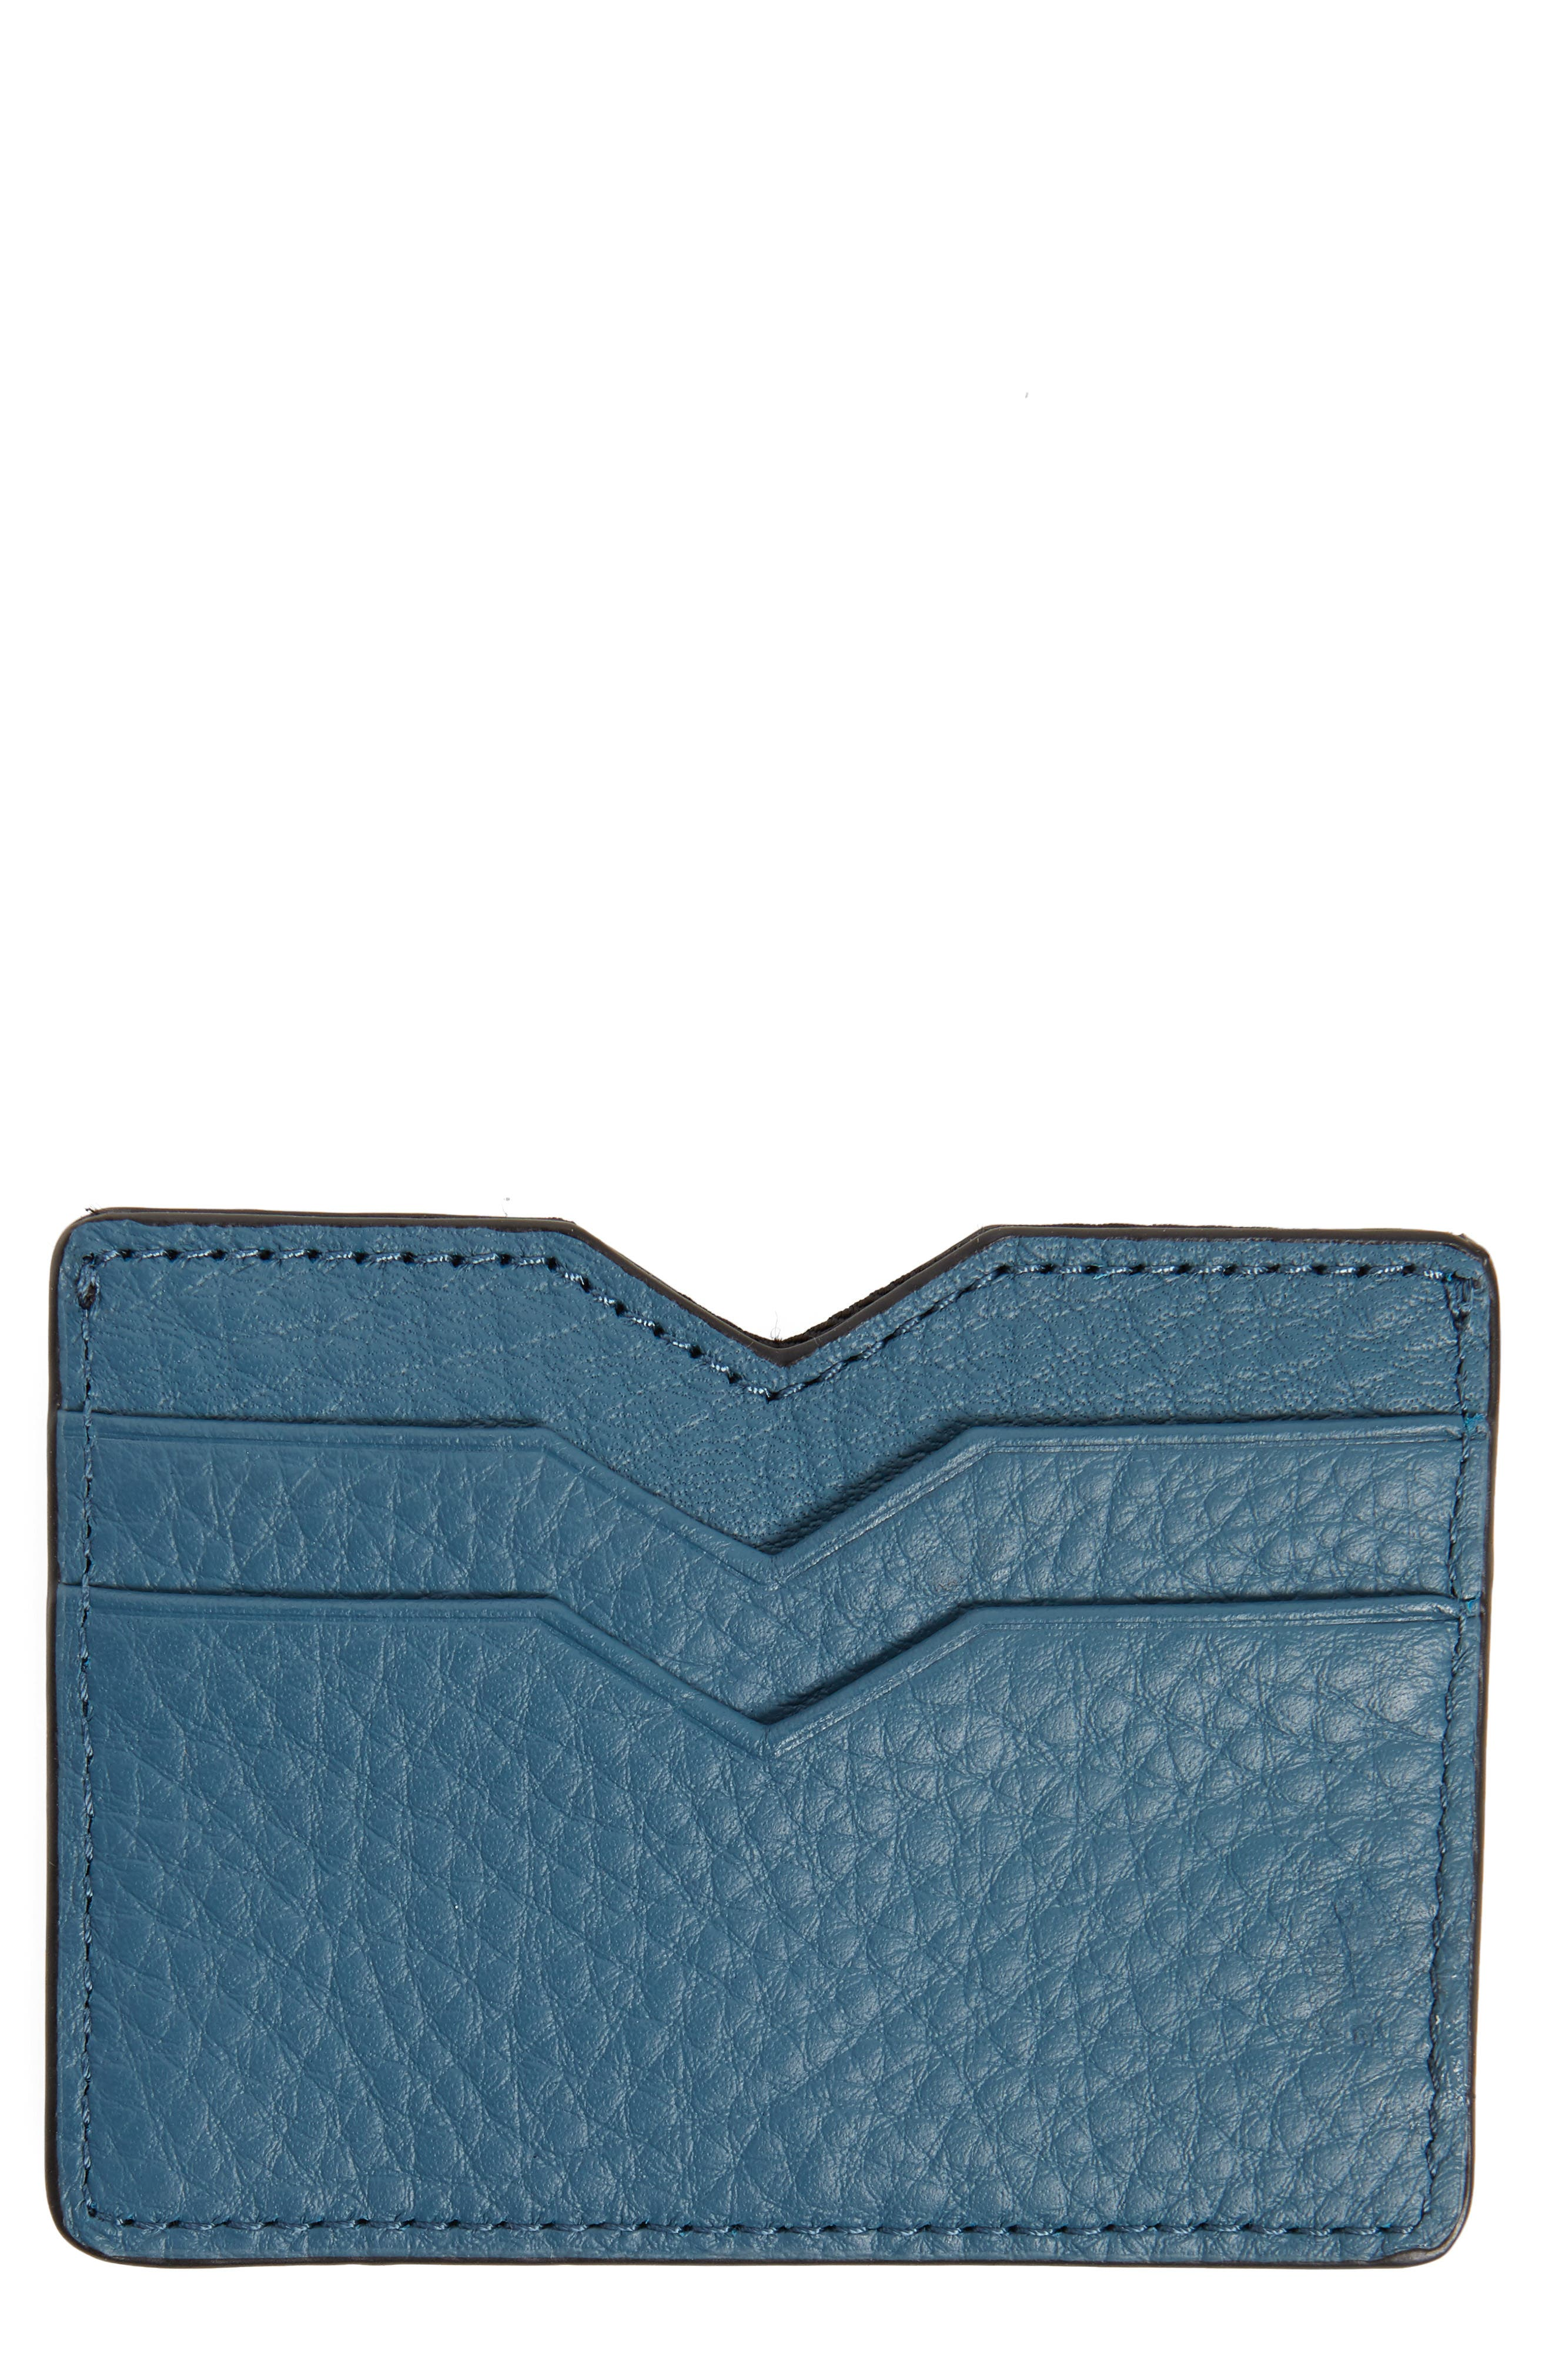 Wes Leather Card Case,                             Main thumbnail 1, color,                             Ocean